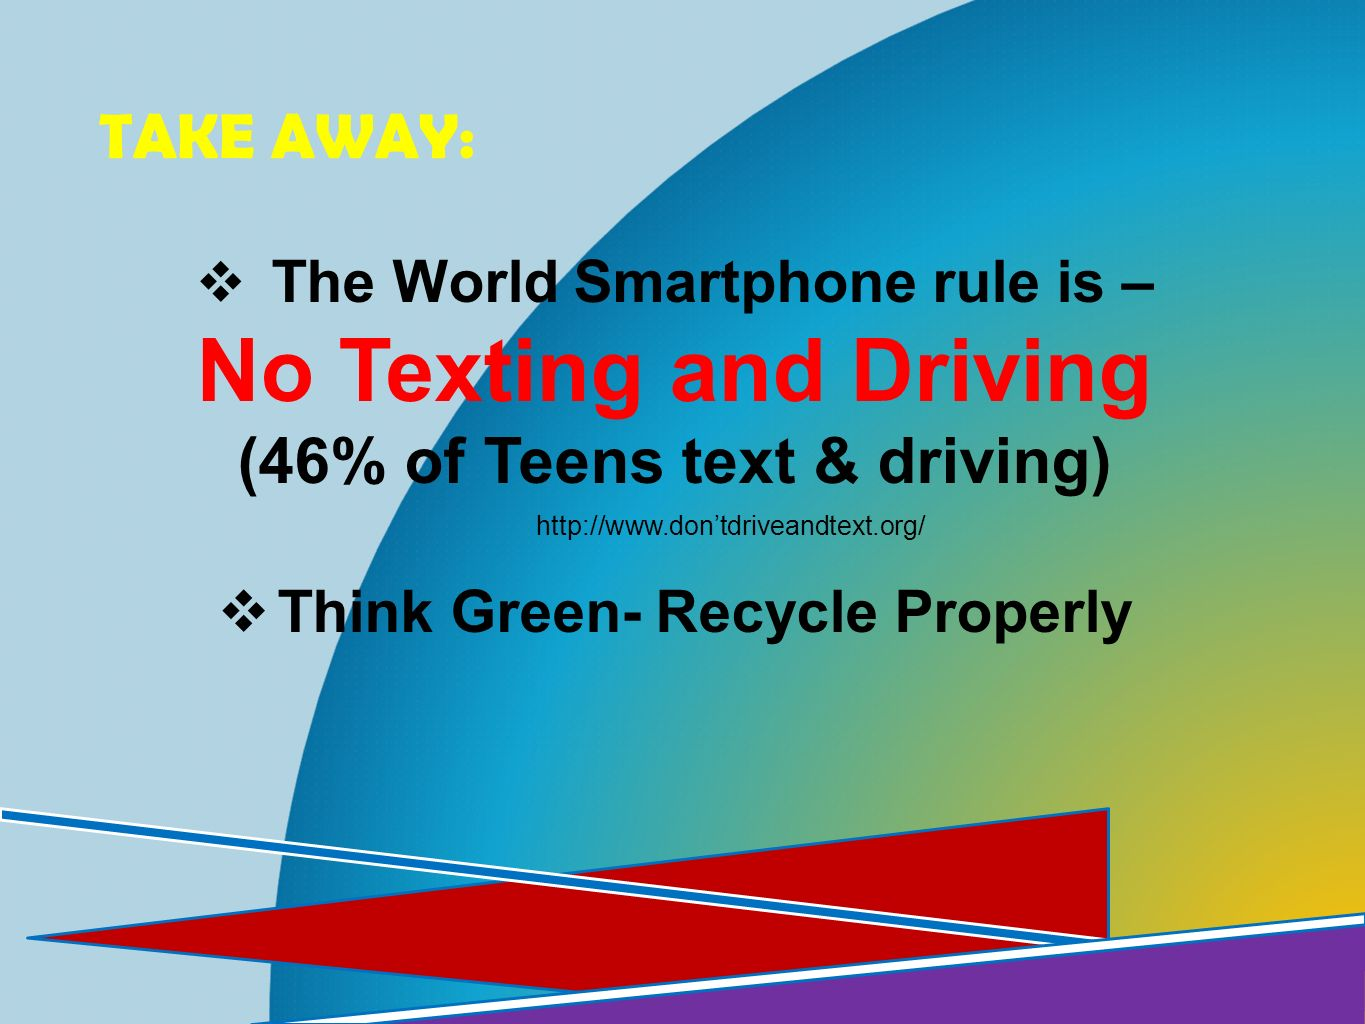 TAKE AWAY: The World Smartphone rule is – No Texting and Driving (46% of Teens text & driving) Think Green- Recycle Properly http://www.dontdriveandte